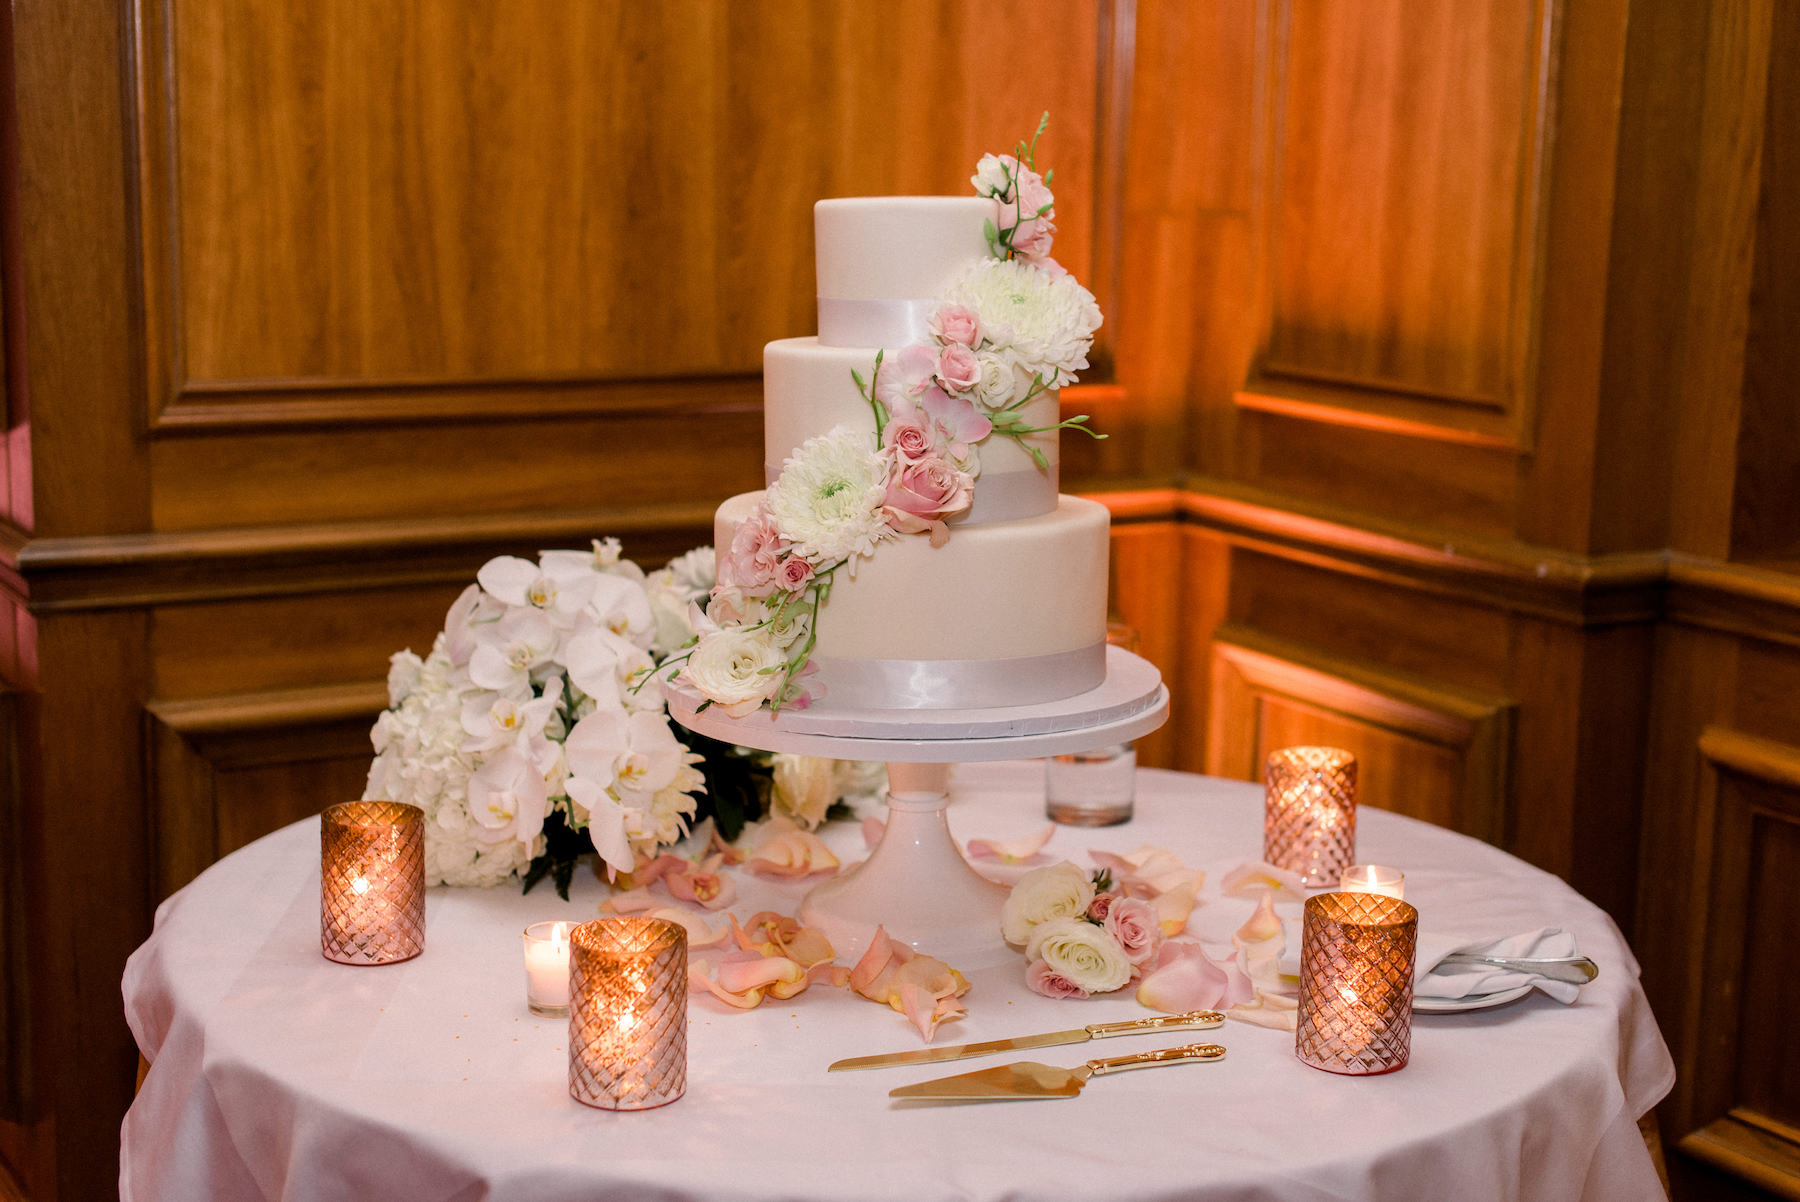 Classic Three Tier White and Silver Wedding Cake with Cascading Blush Pink and Dahlia Flowers, White Orchid Bouquet, Gold Candles | Tampa Wedding Planner Special Moments Event Planning